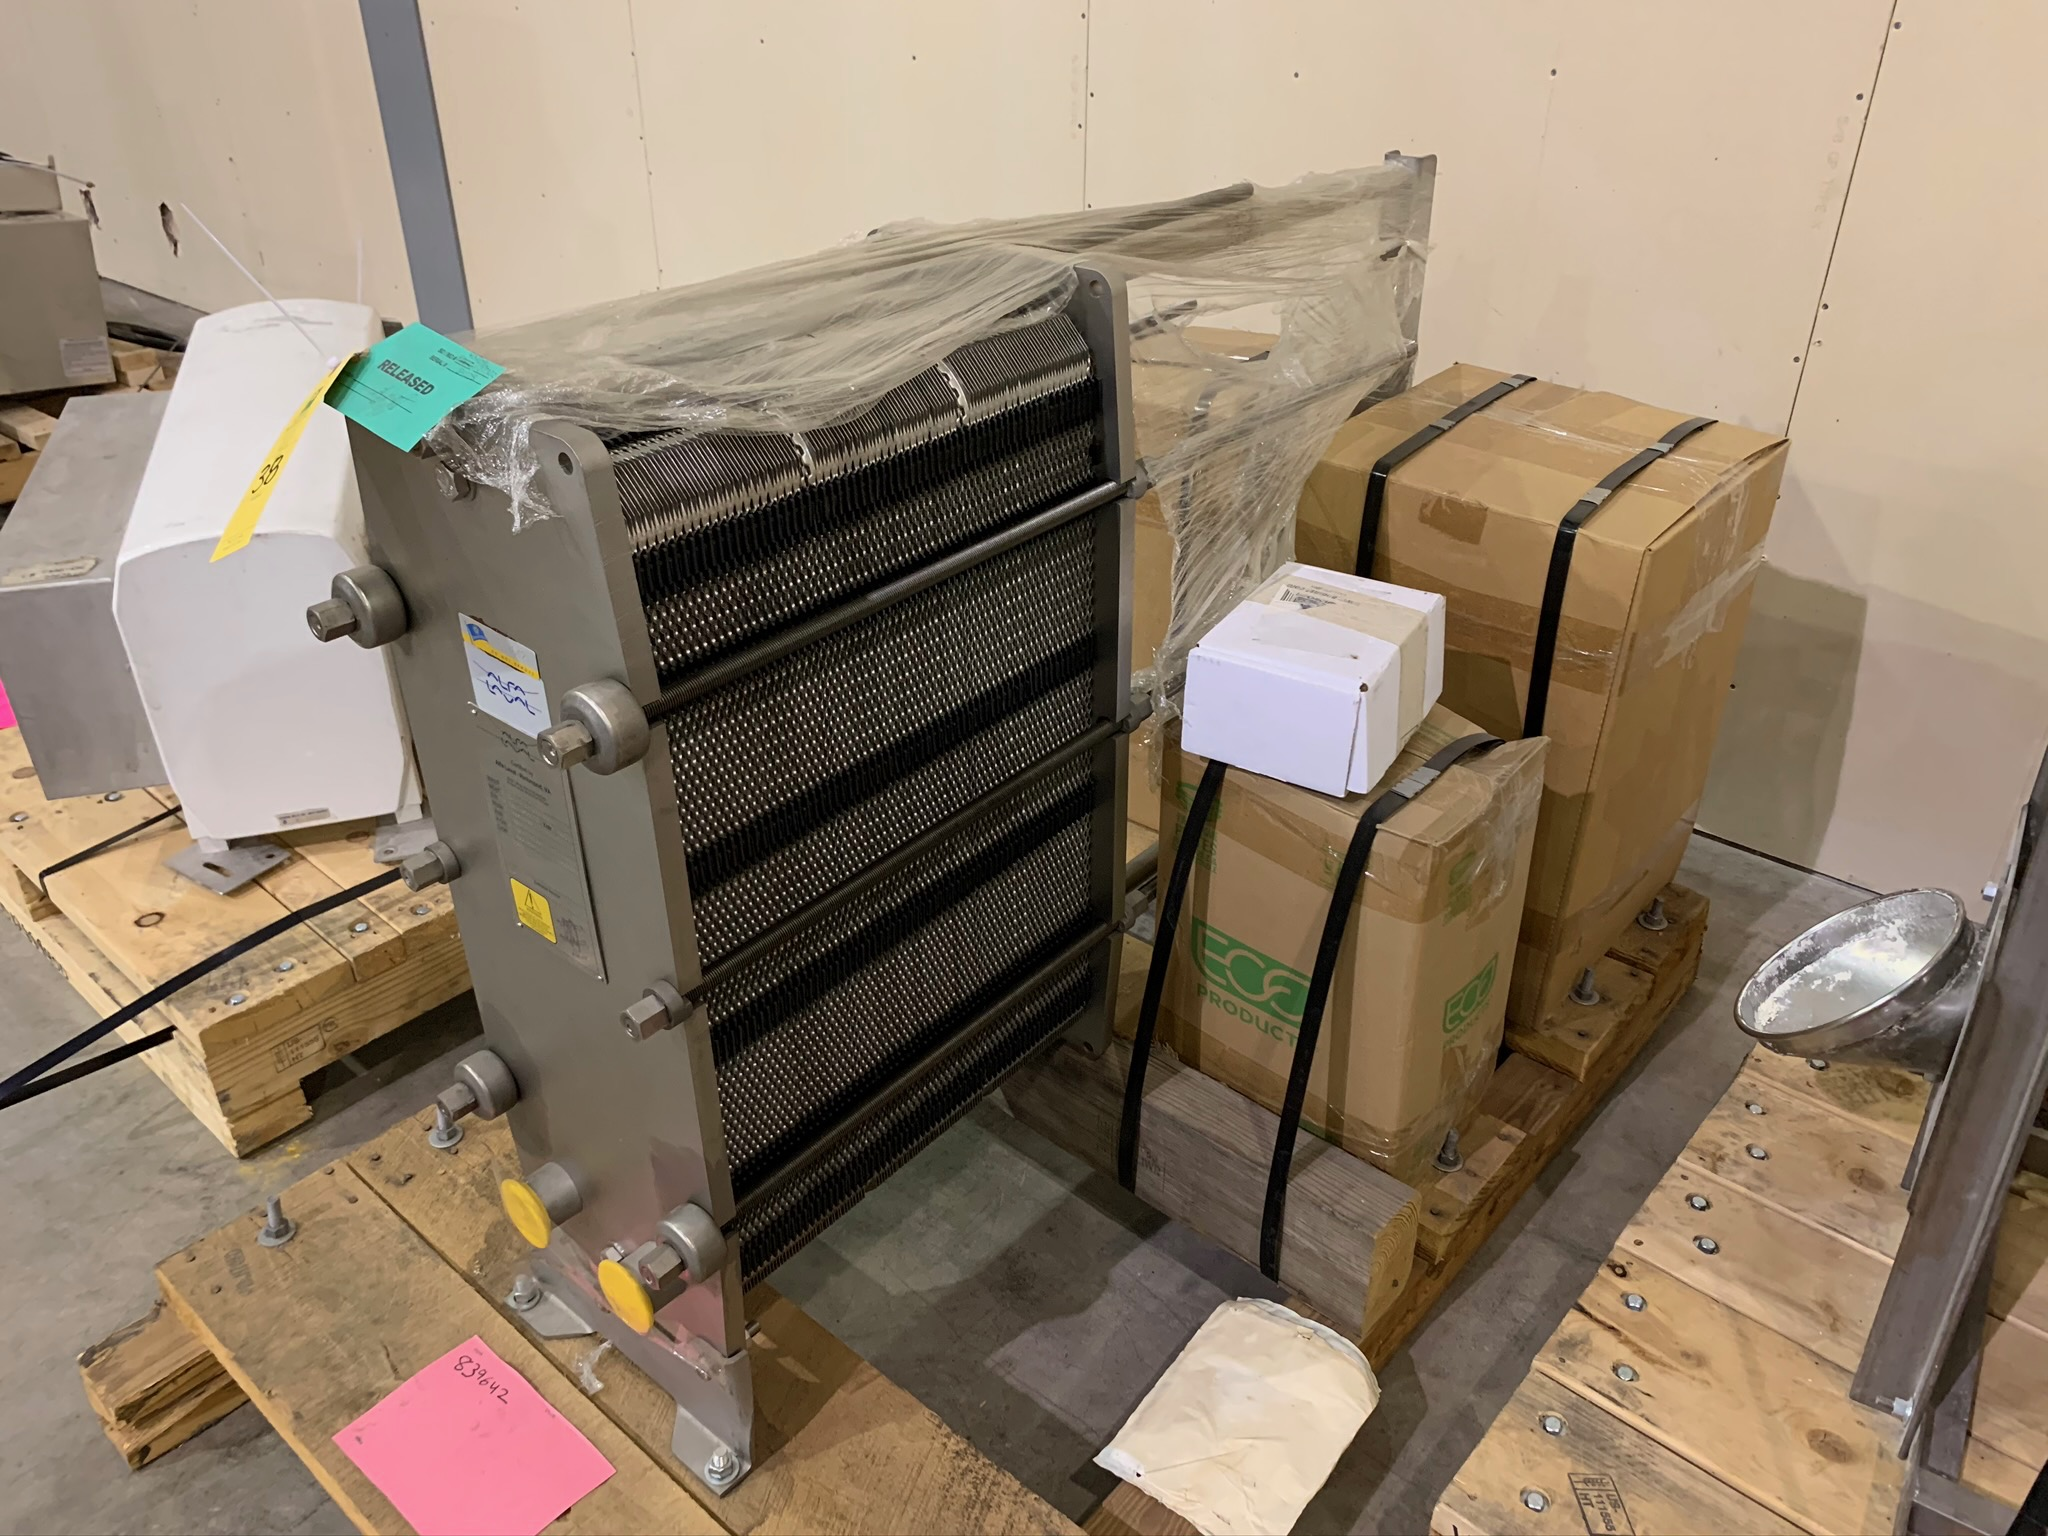 Lot 38 - Alfa Laval Plate and Frame Heat Exchanger Model M6-MBASE S/N 30113-89775 (Rigging Fee - $50)